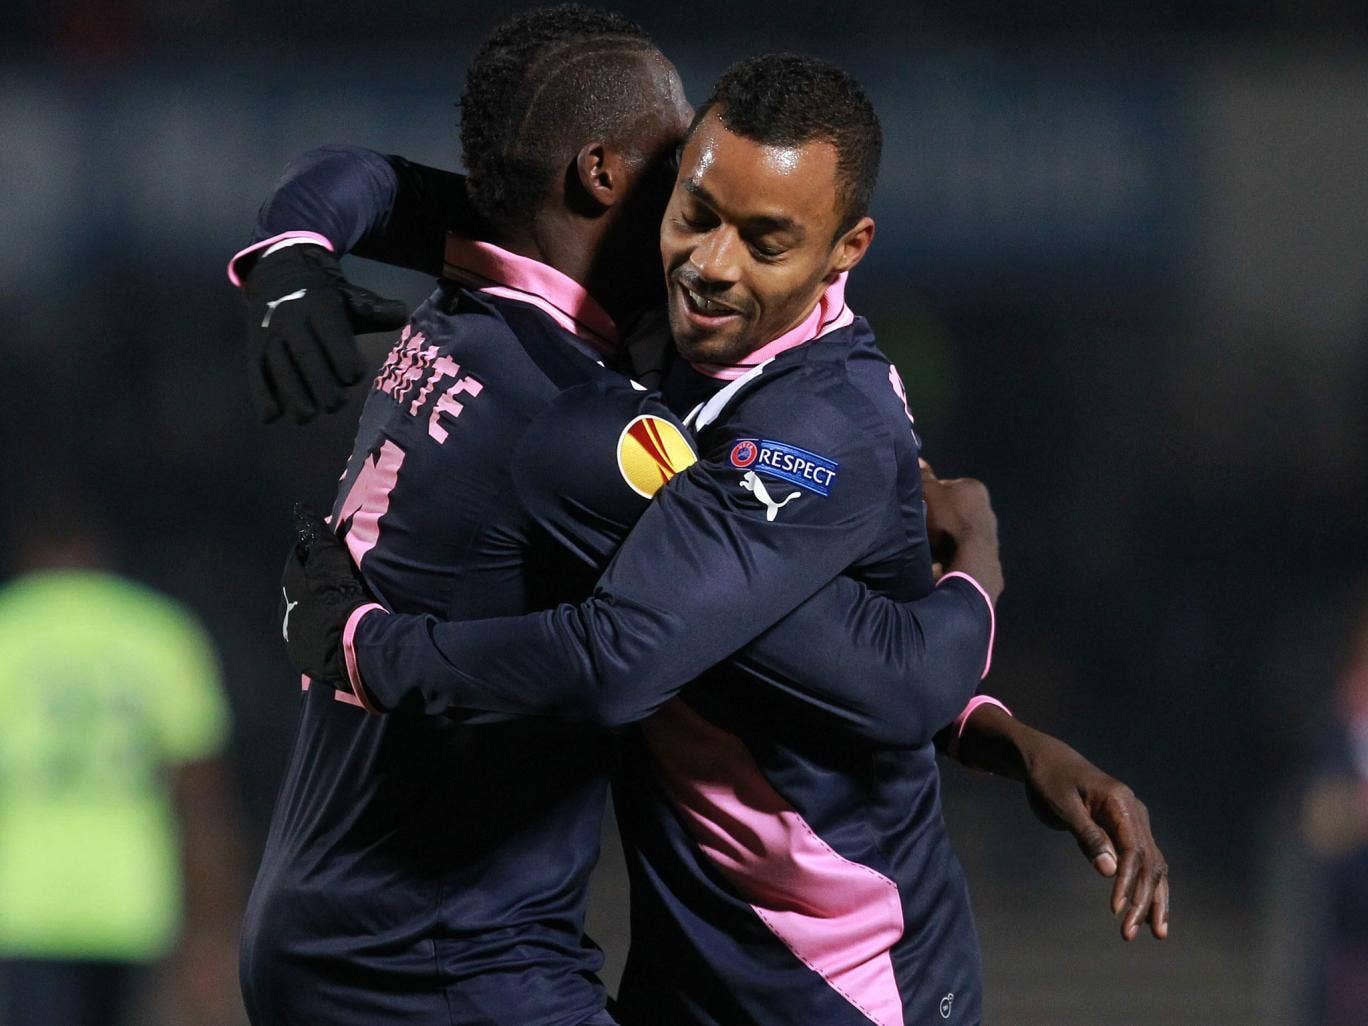 Bordeaux's Cheick Diabate centre left, celebrates with David Bellion, after scoring against Newcastle United